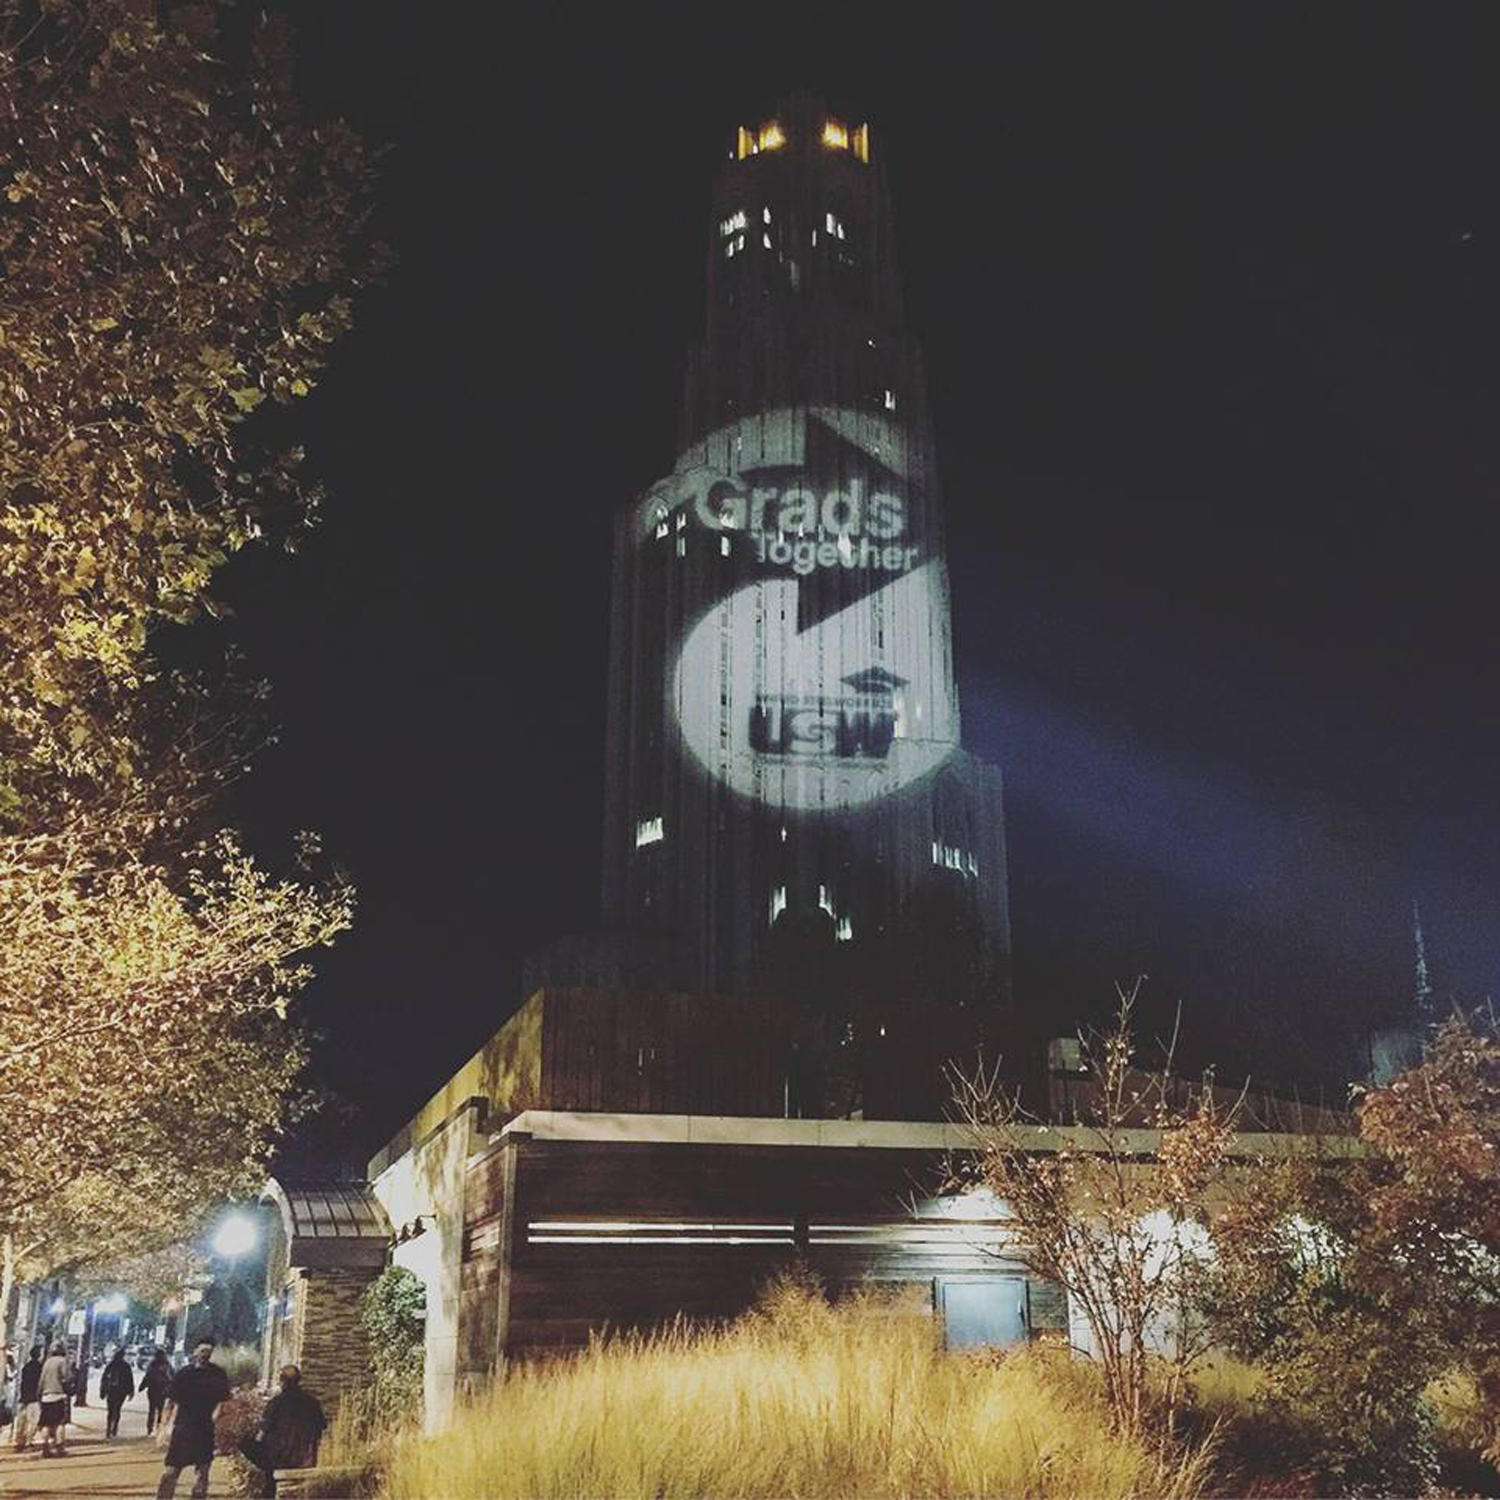 Pitt grad student union organizers, in conjunction with United Steelworkers, projected their campaign logo on the Cathedral last year.